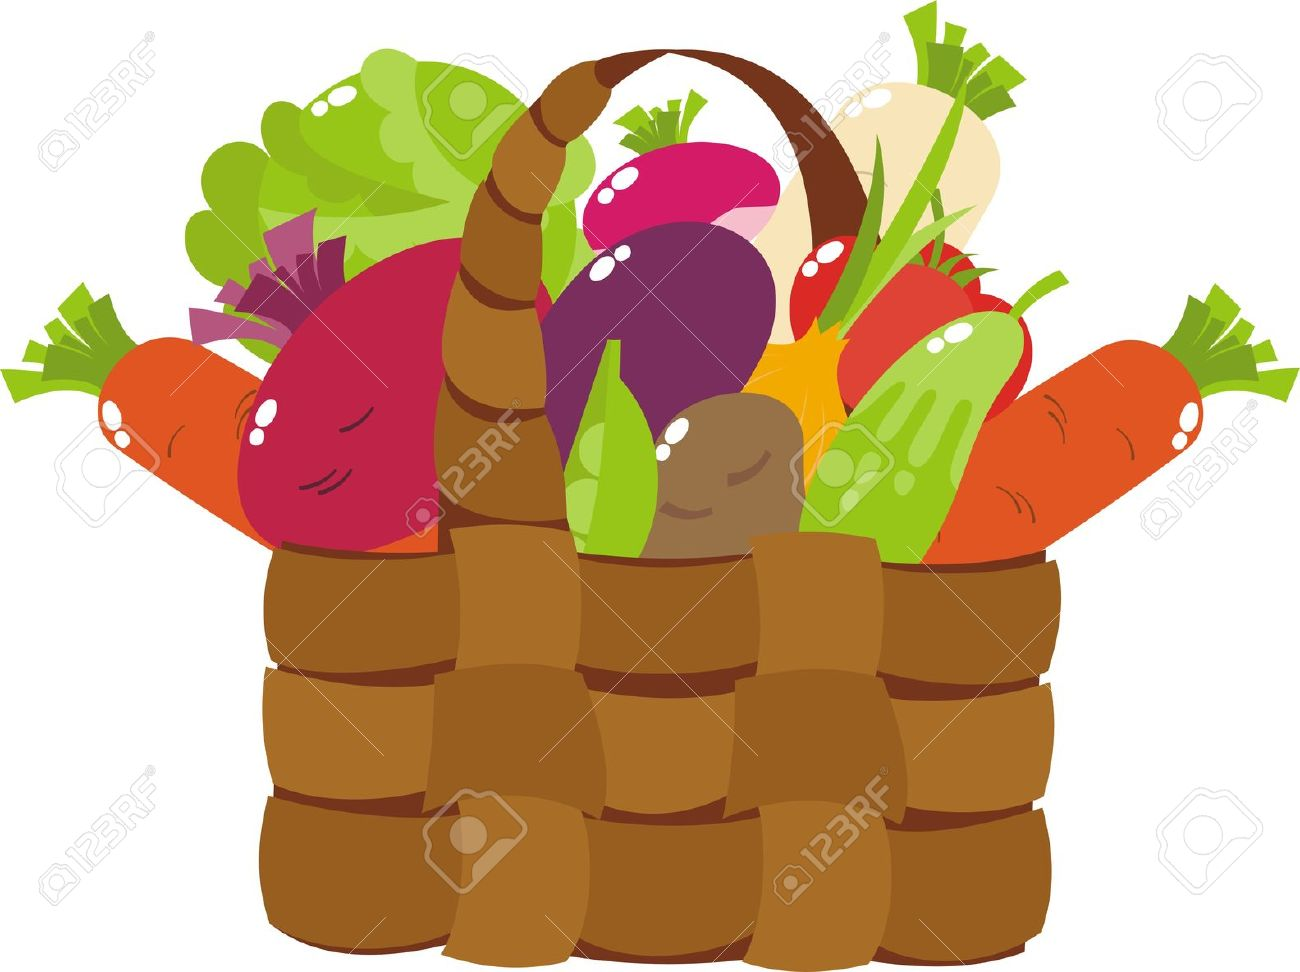 Vector pencil and in. Vegetables clipart fair